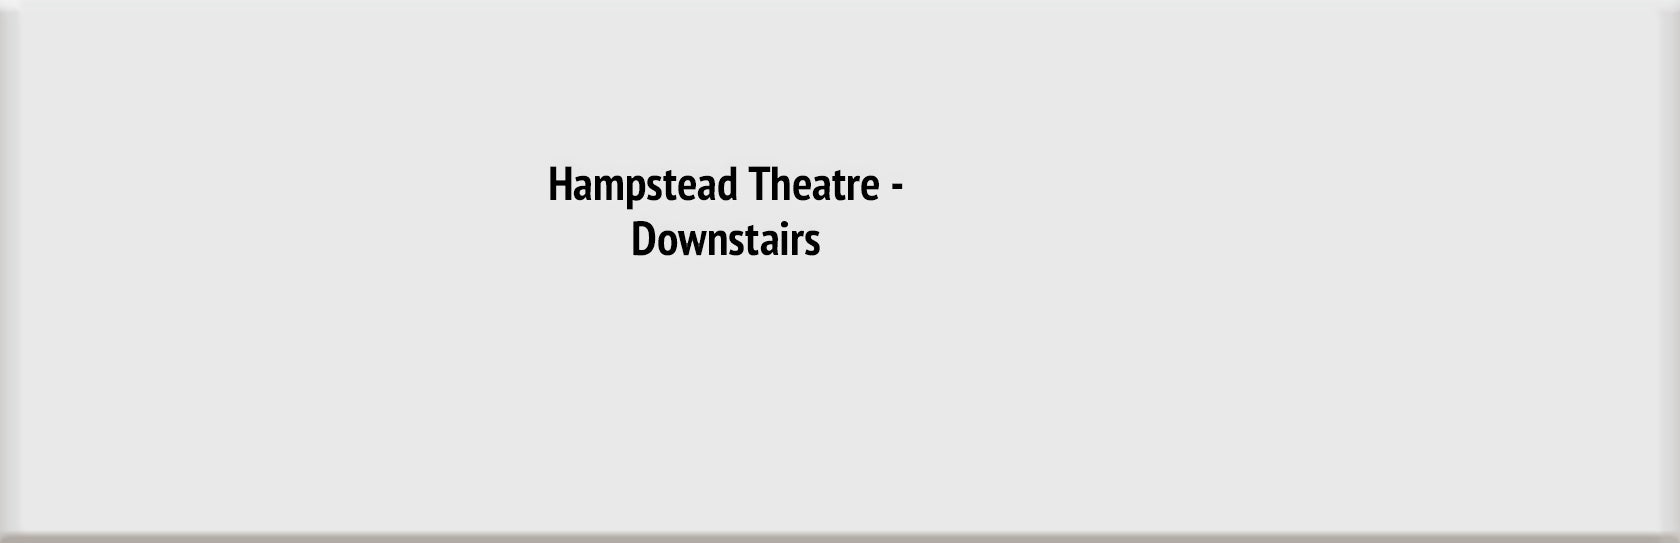 Hampstead Theatre - Downstairs